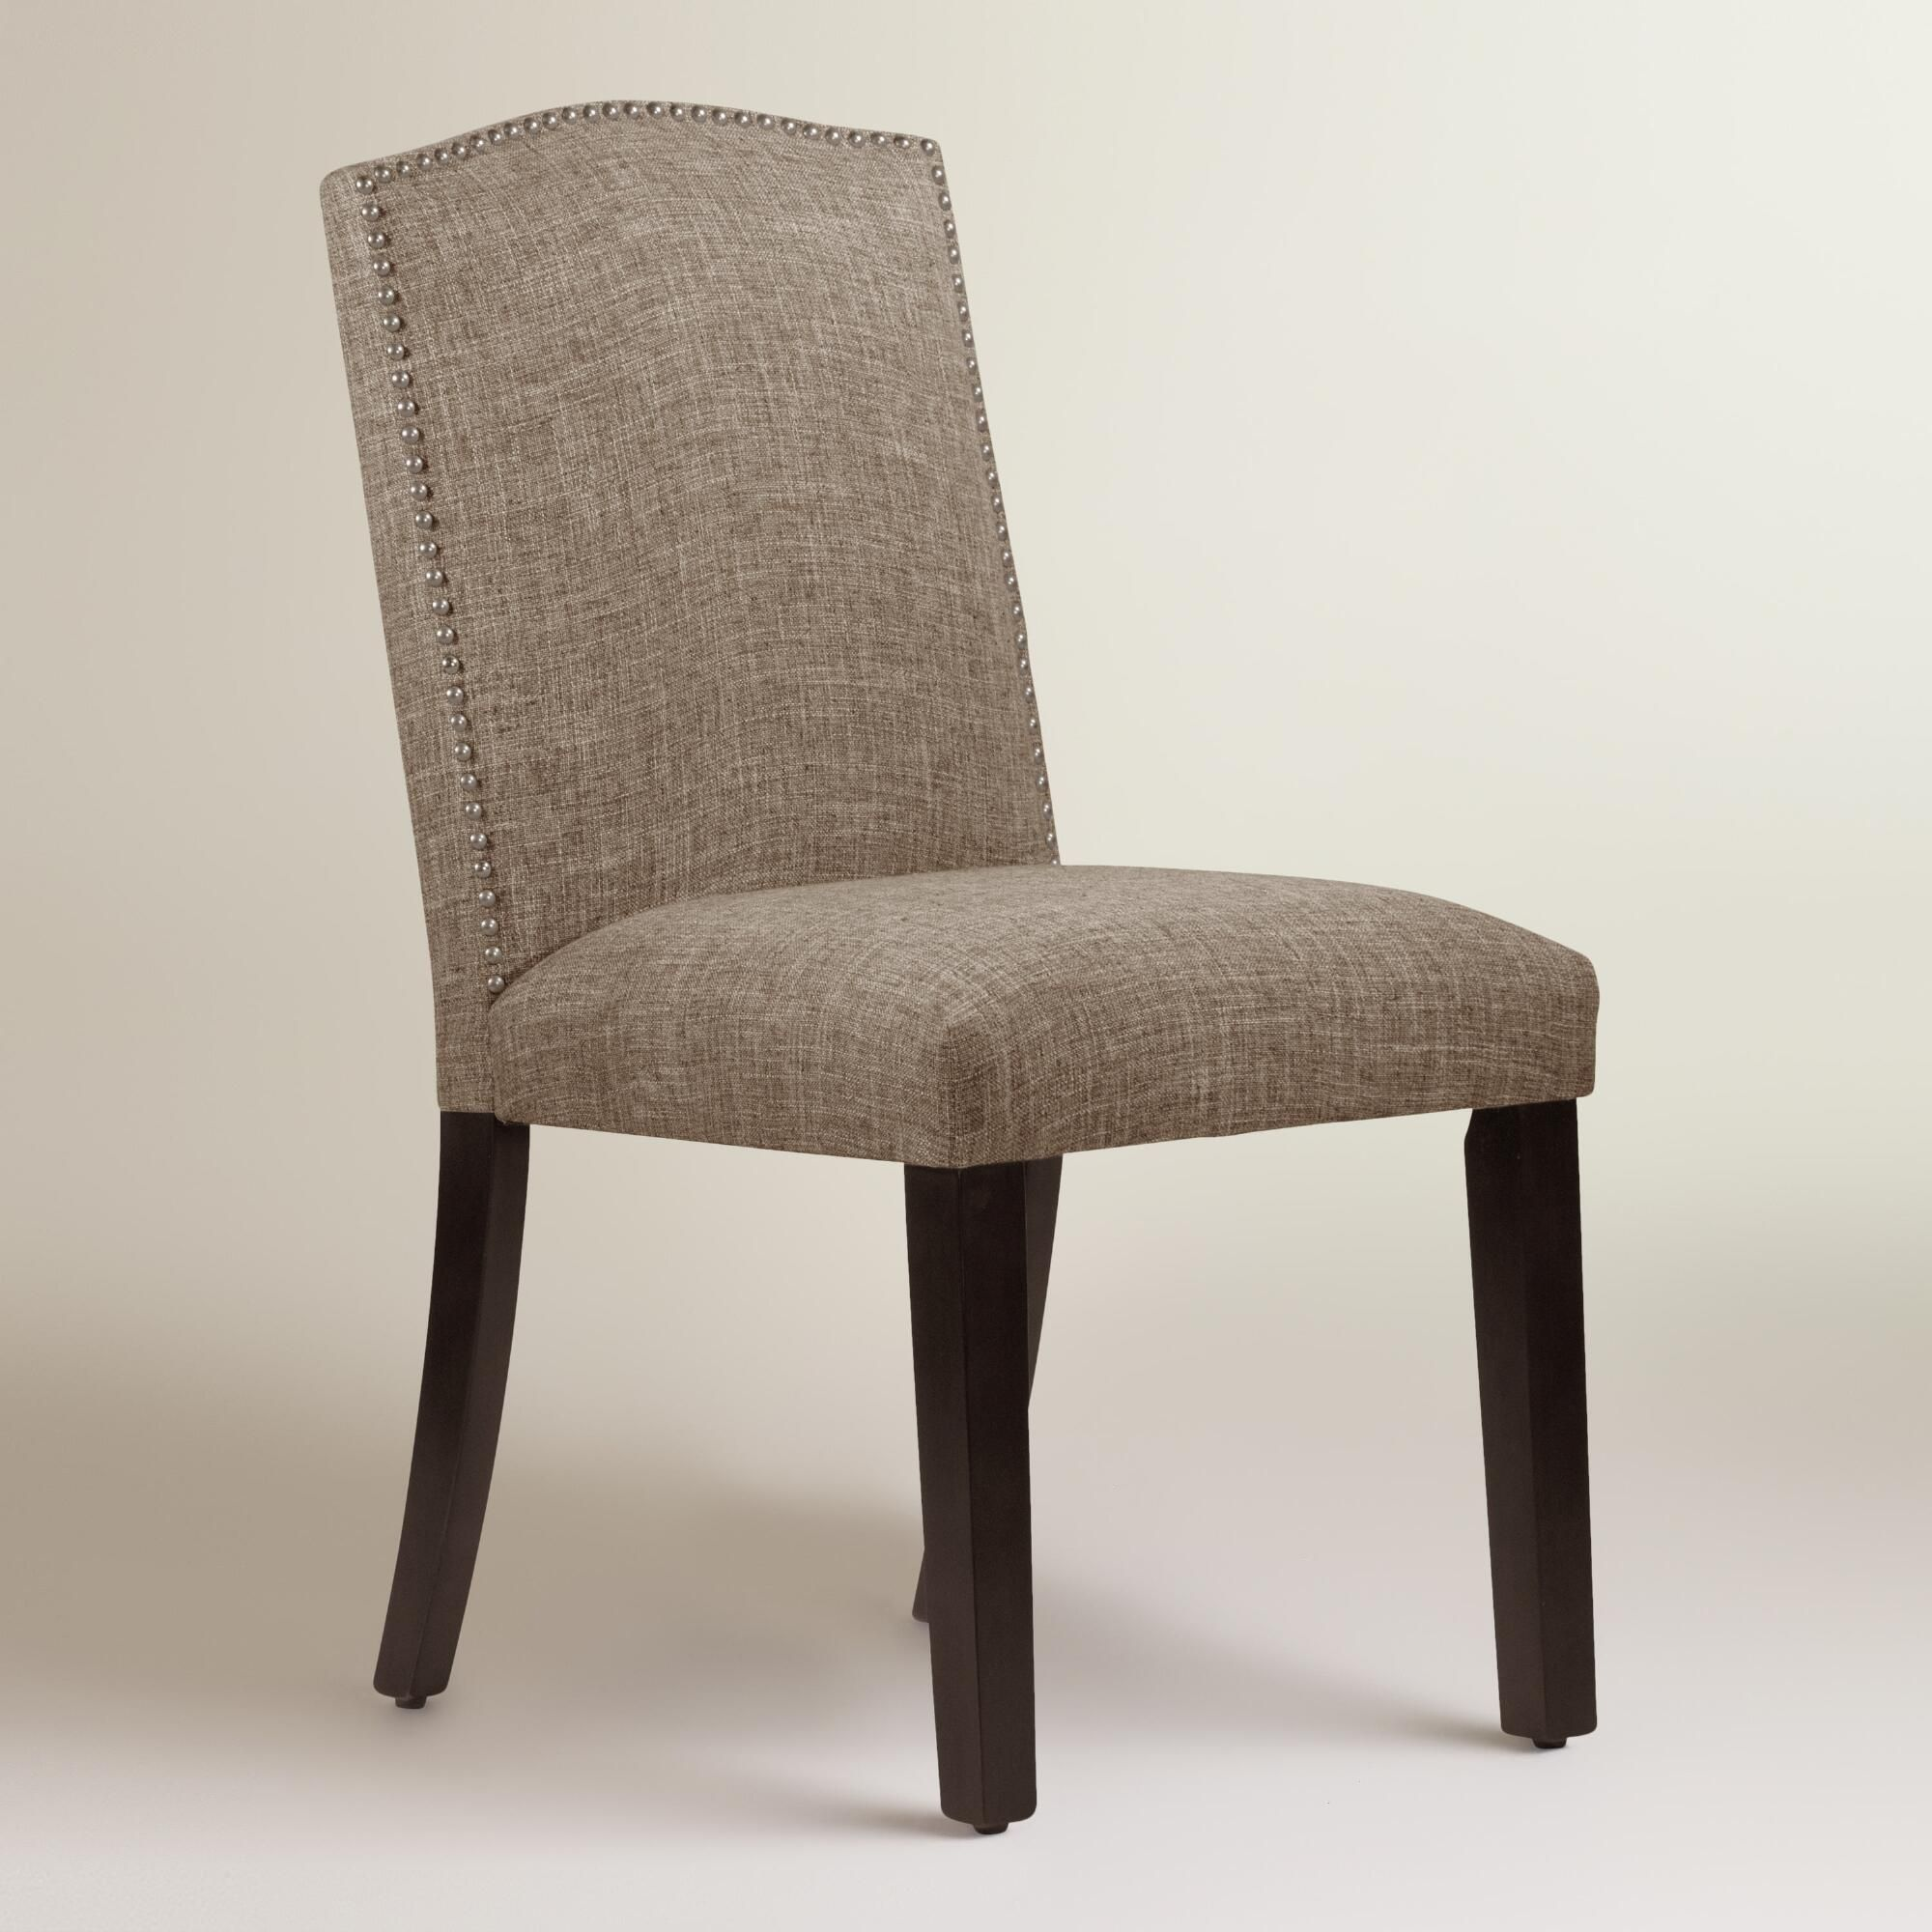 Low Profile Upholstered Dining Chairs Dining Room Ideas